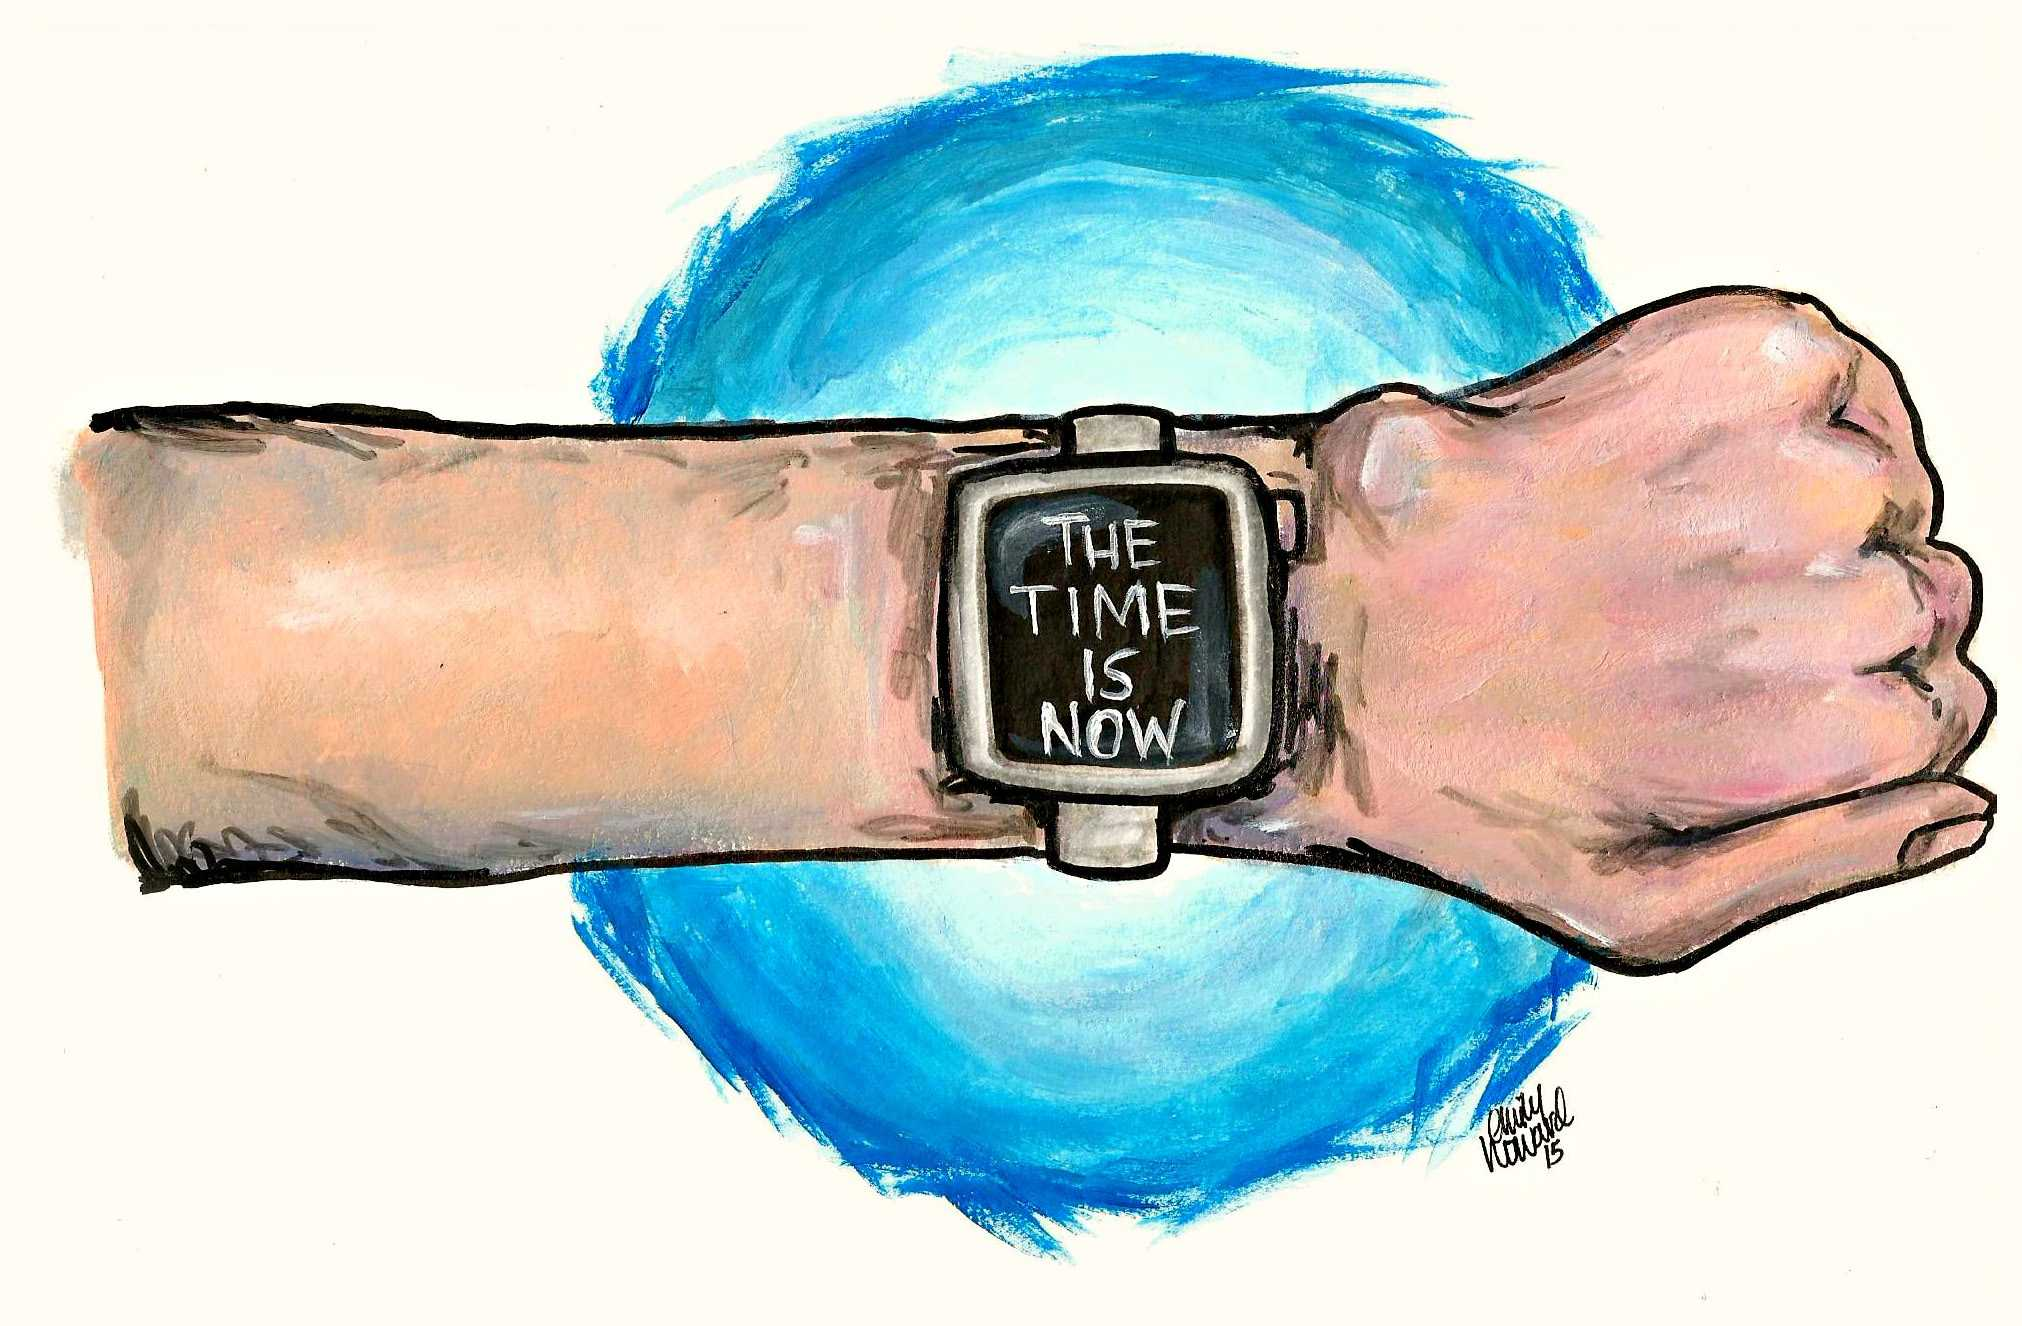 Cartoon: Wearable devices will become next tech trend